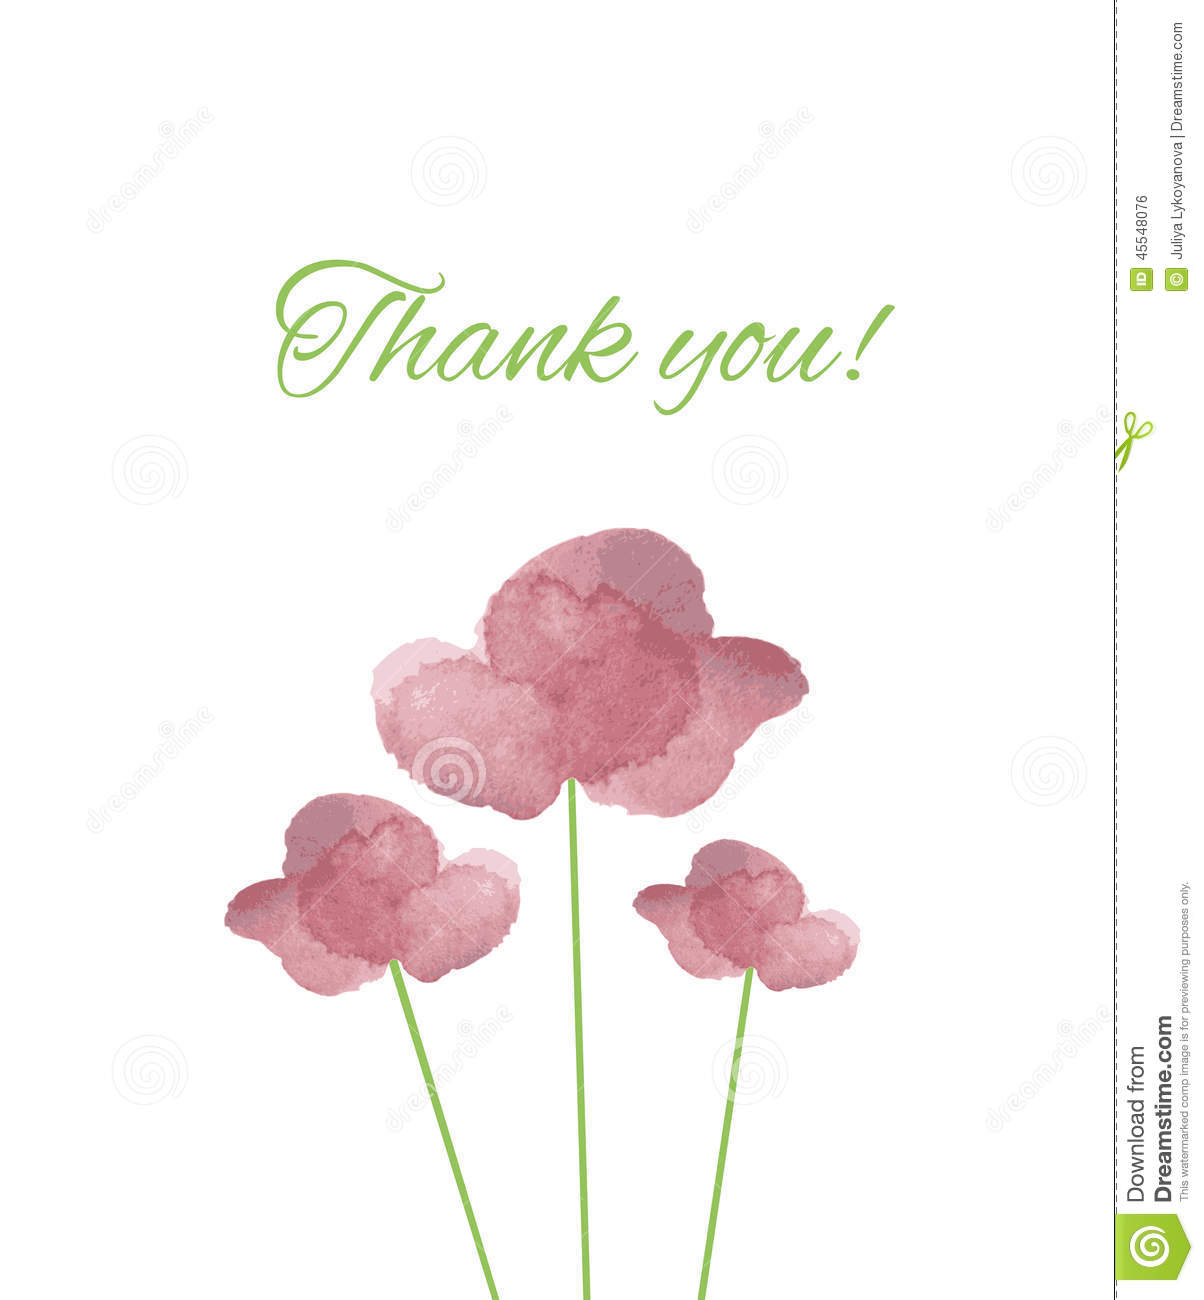 Thank you calligraphy vector with watercolor pink flowers